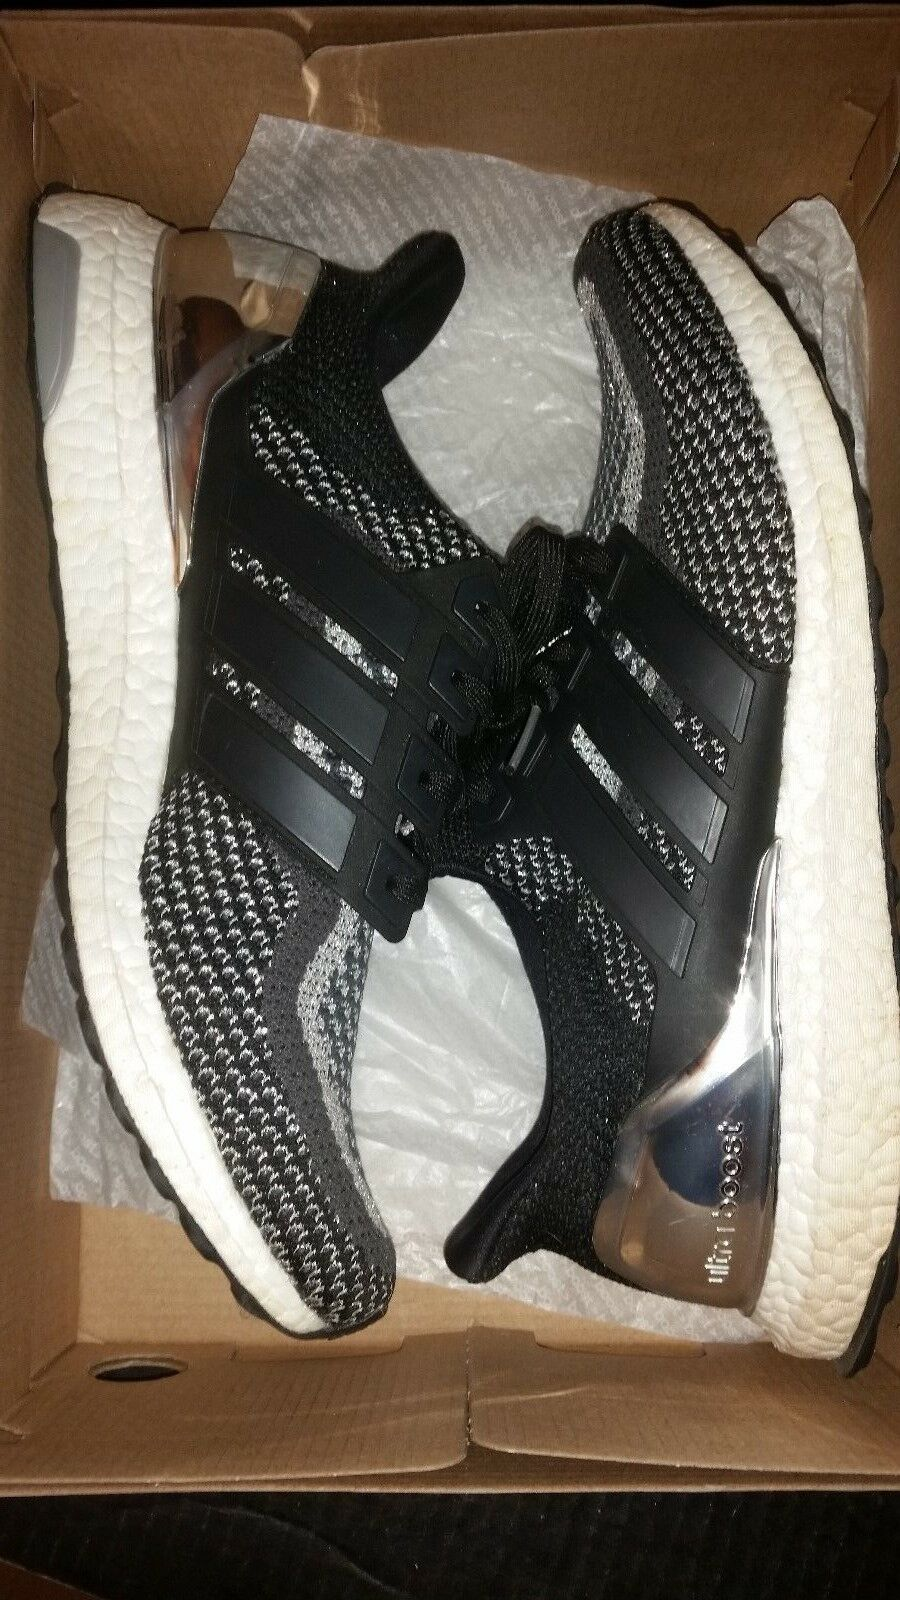 PREOWNED Adidas Ultra Boost ultraboost Silver medal LTD limited 2.0 1.0 3.0 4.0